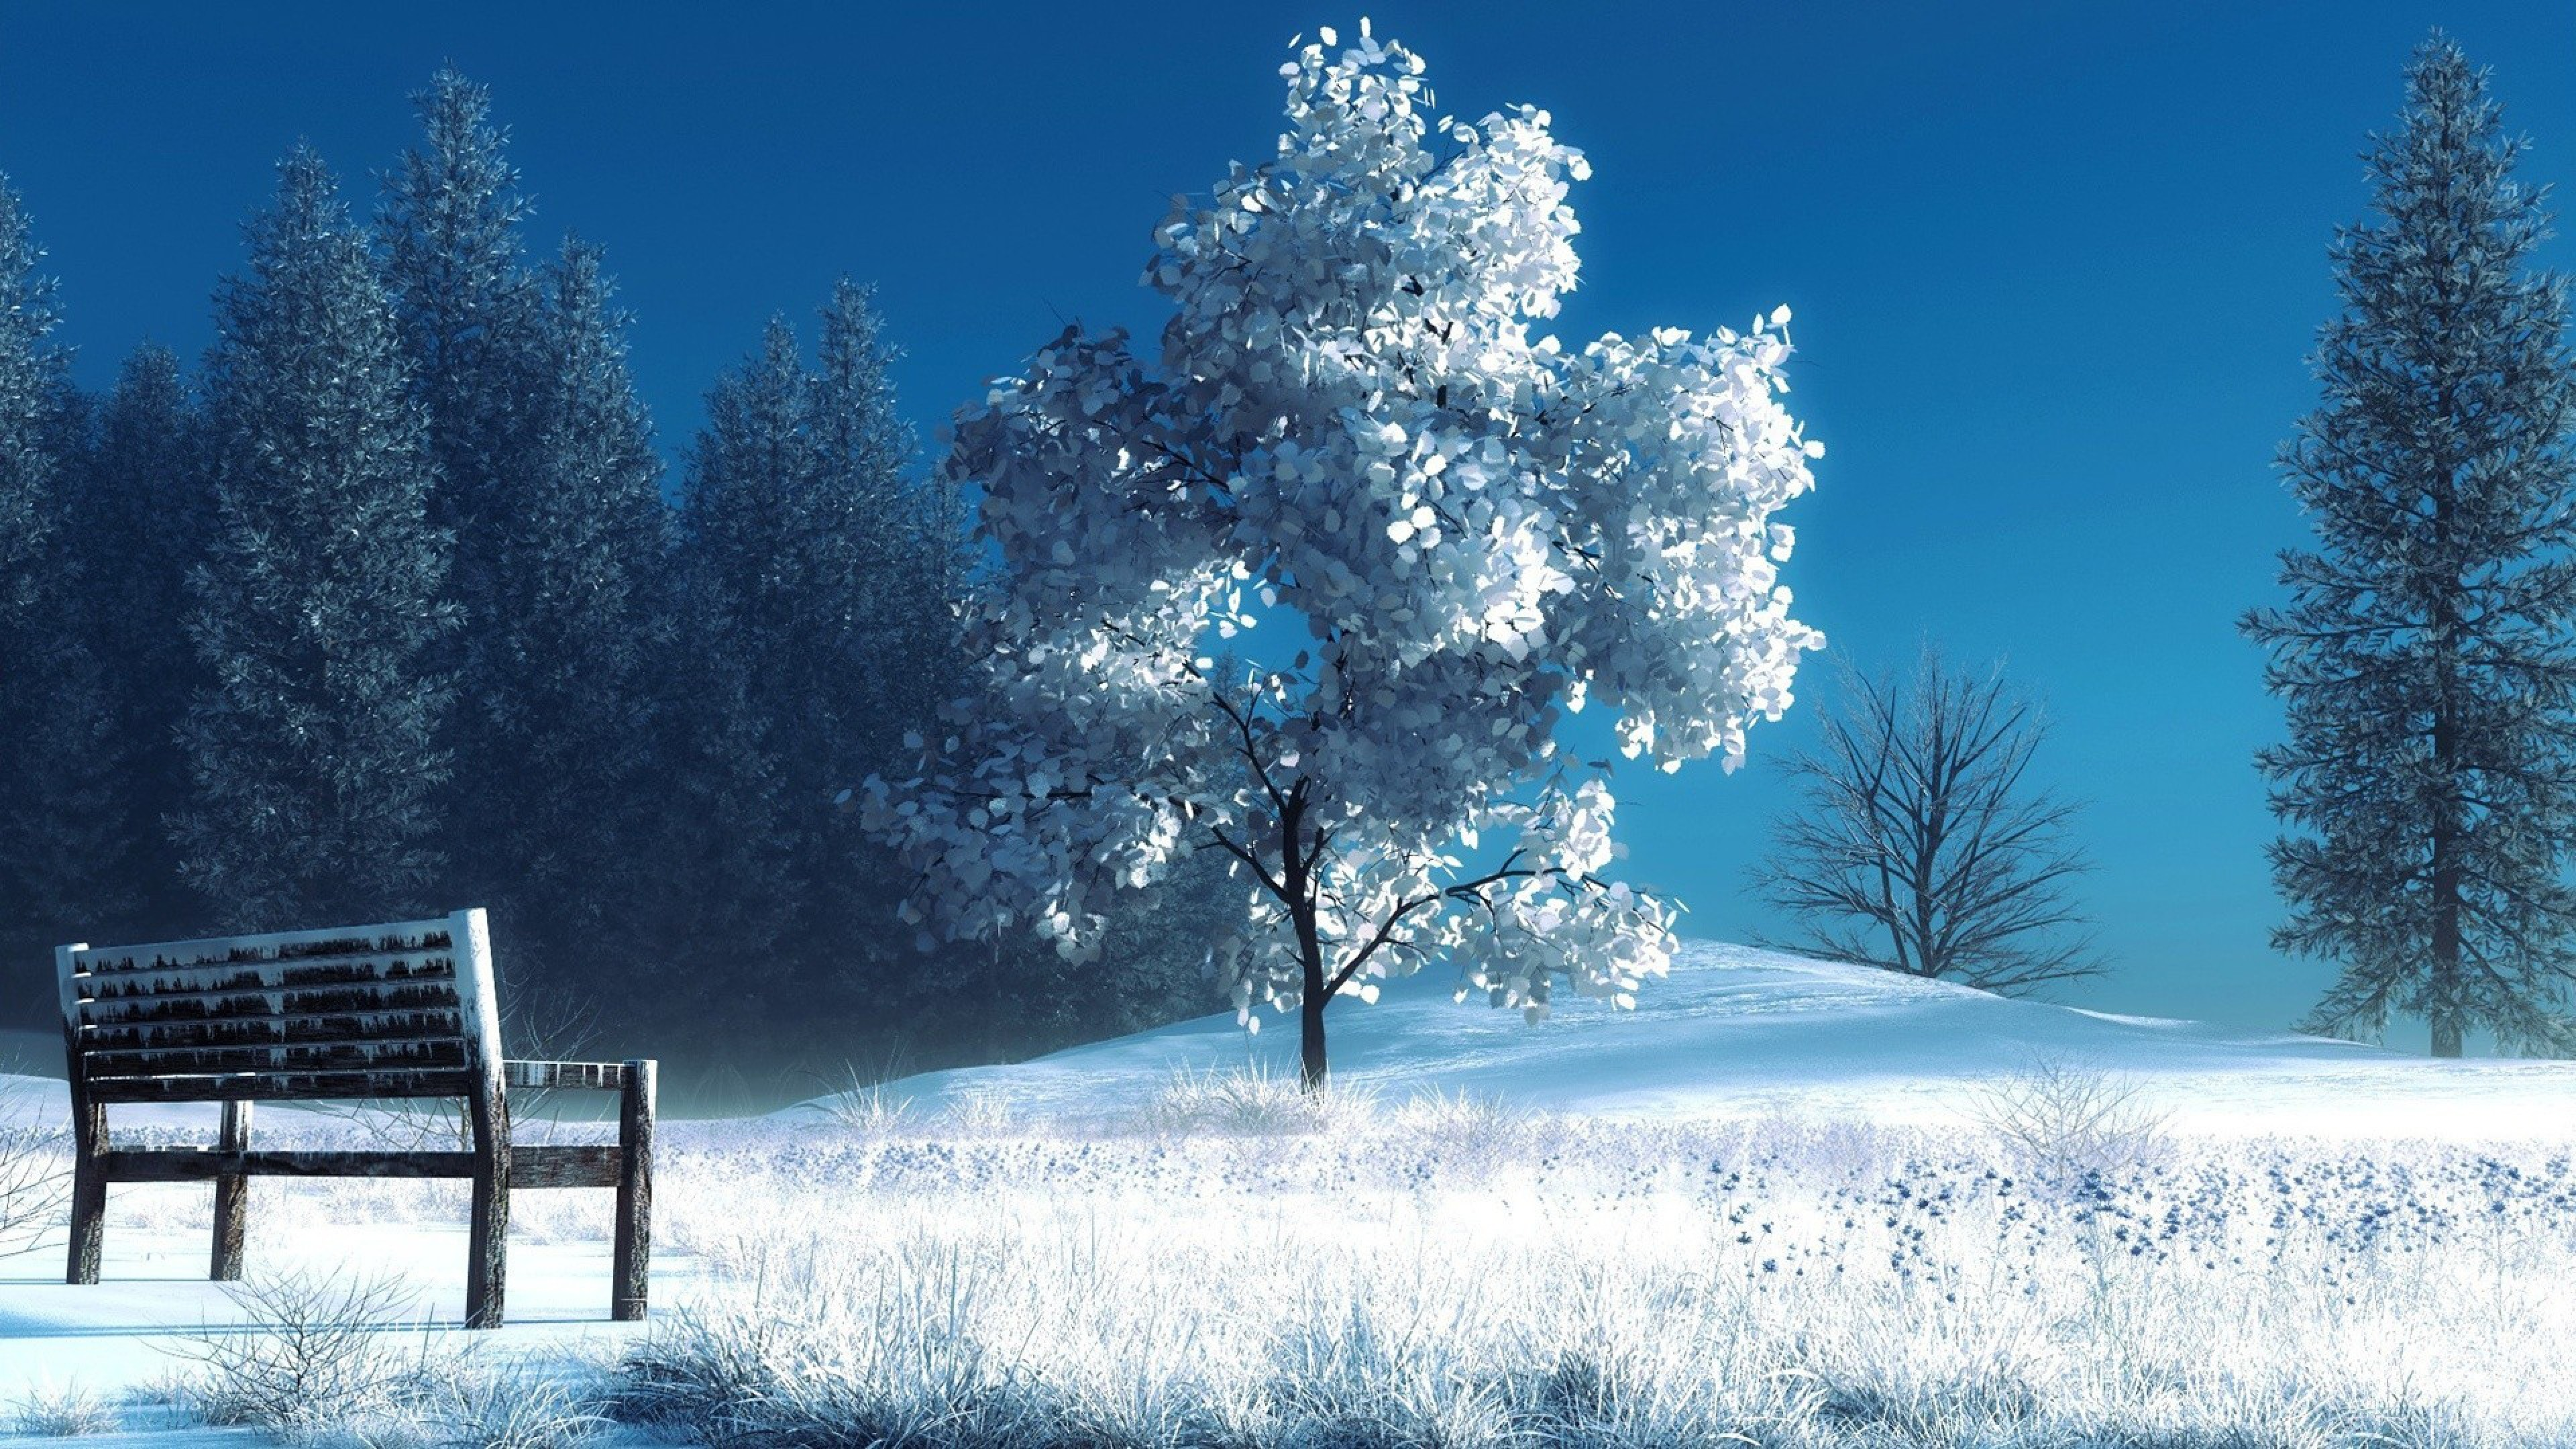 Res: 3840x2160, Free Awesome Snowy Images